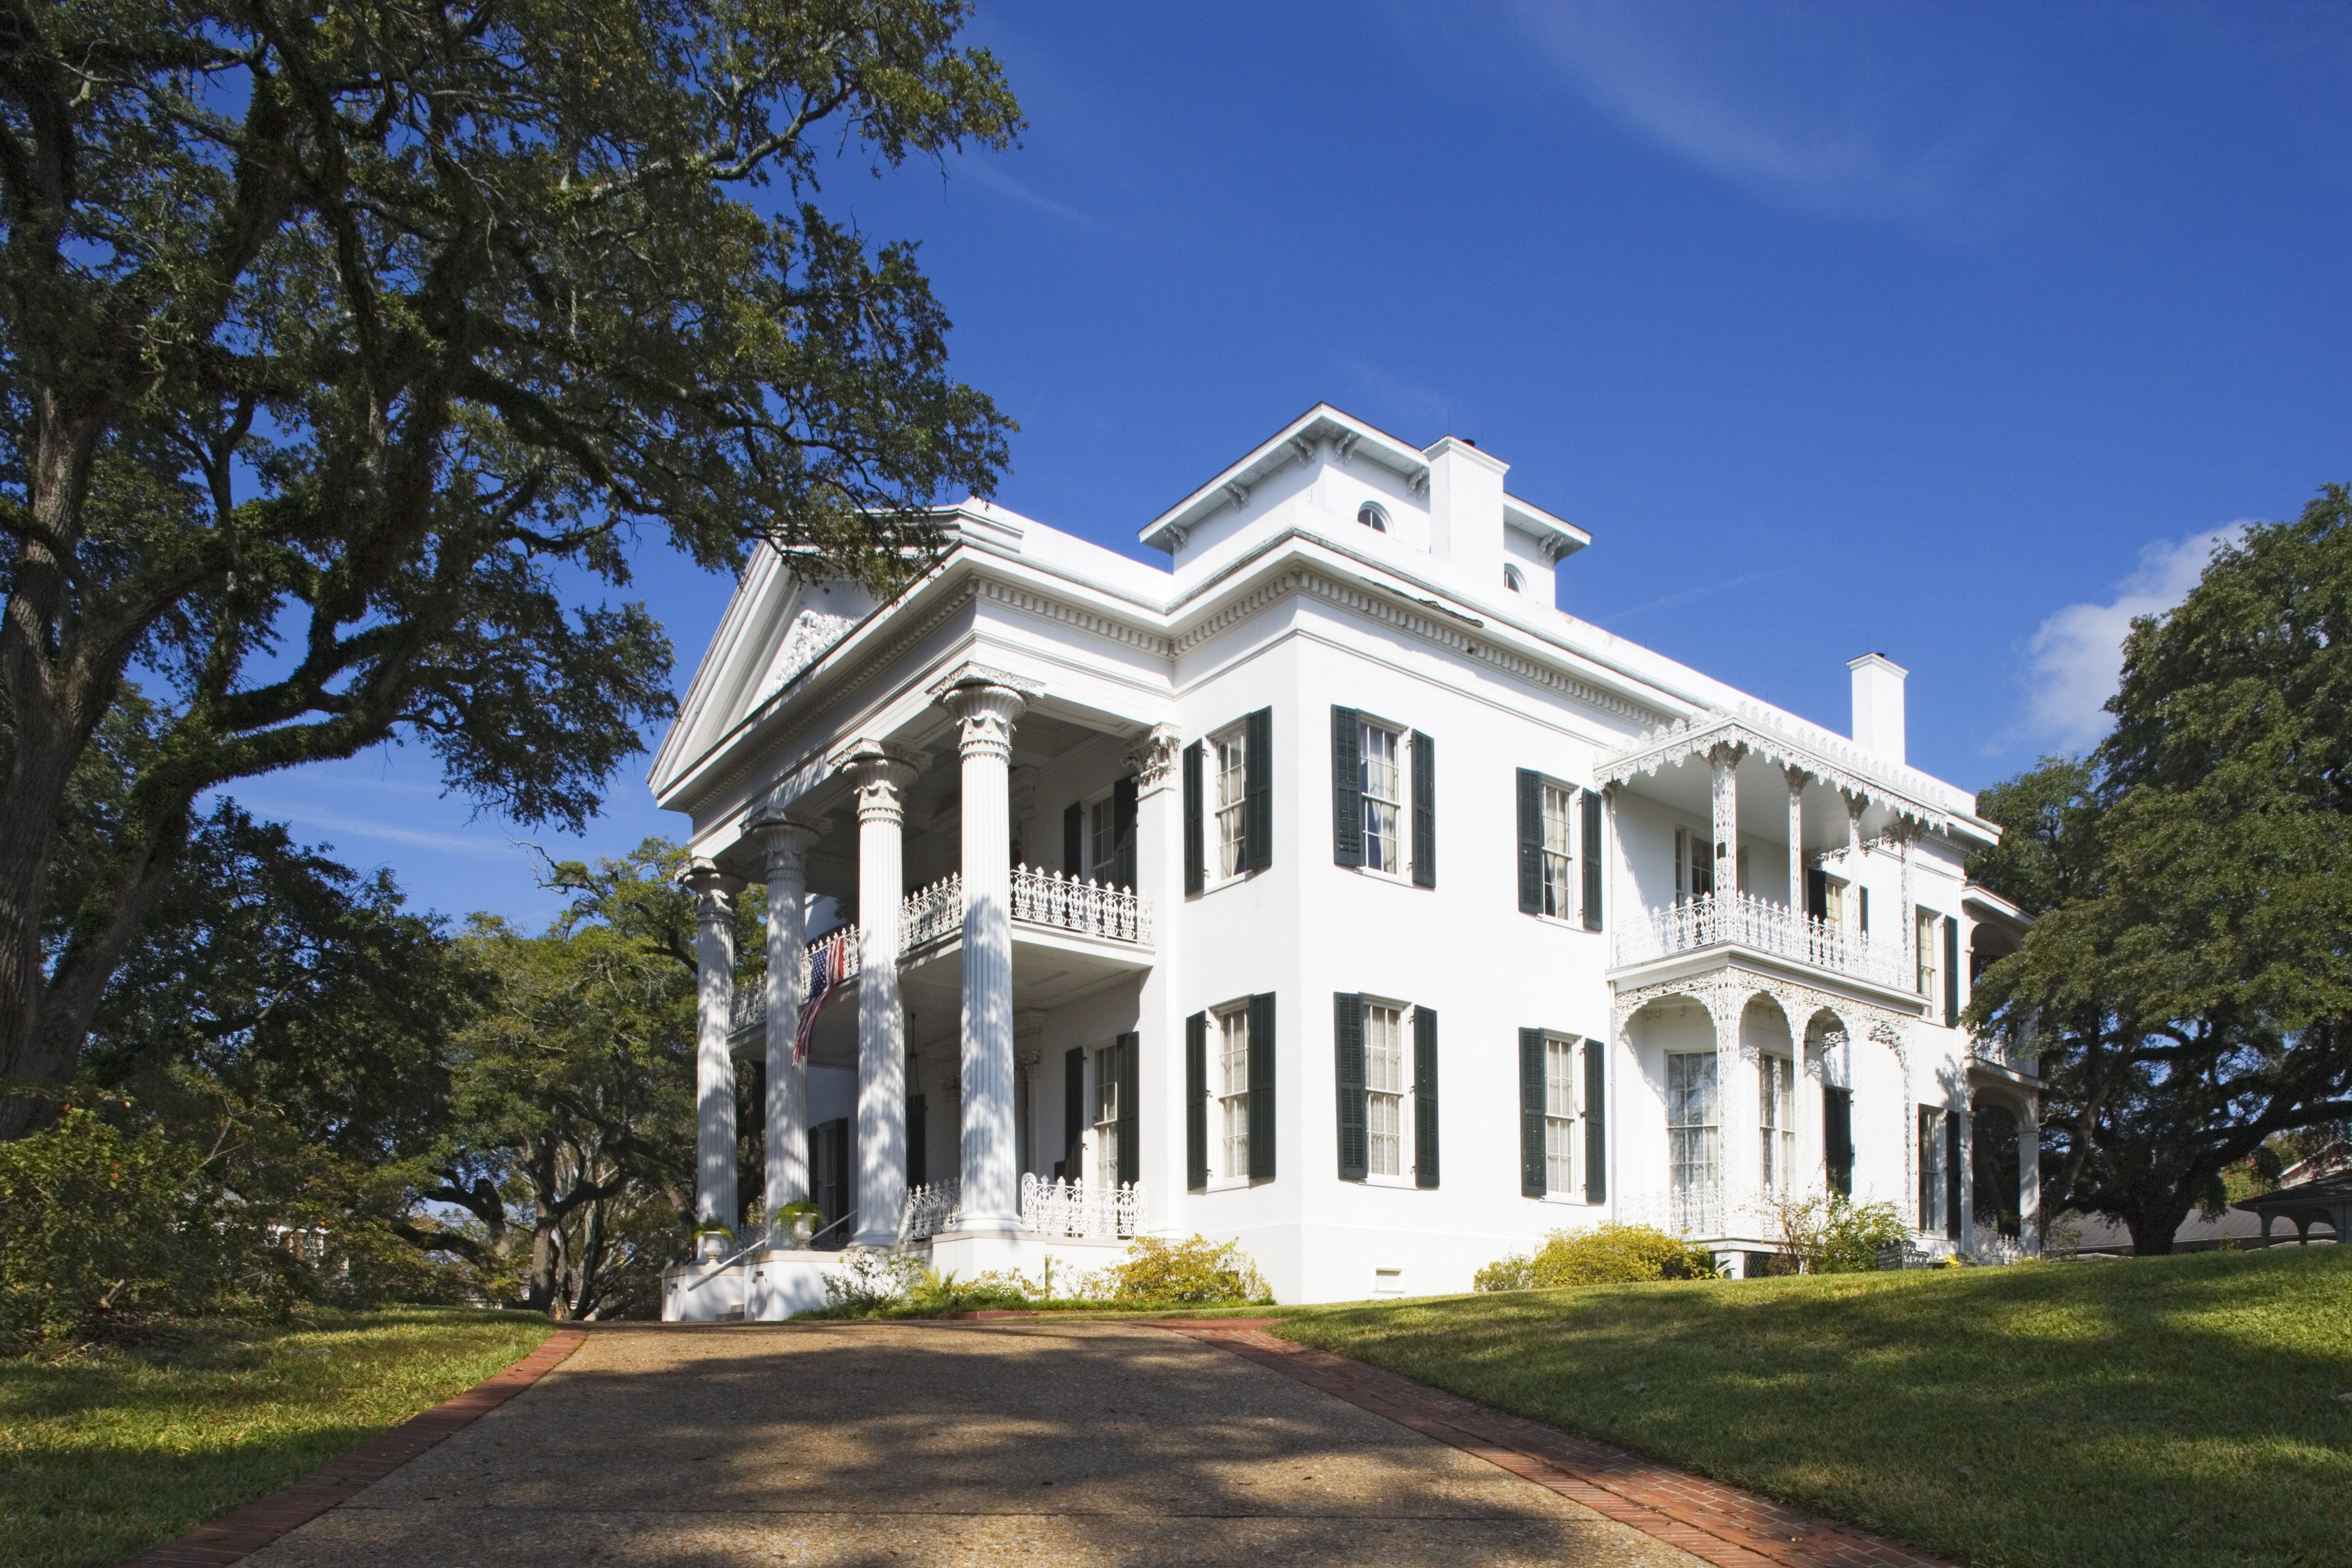 Architectural Styles, American Homes From 1600 to Today